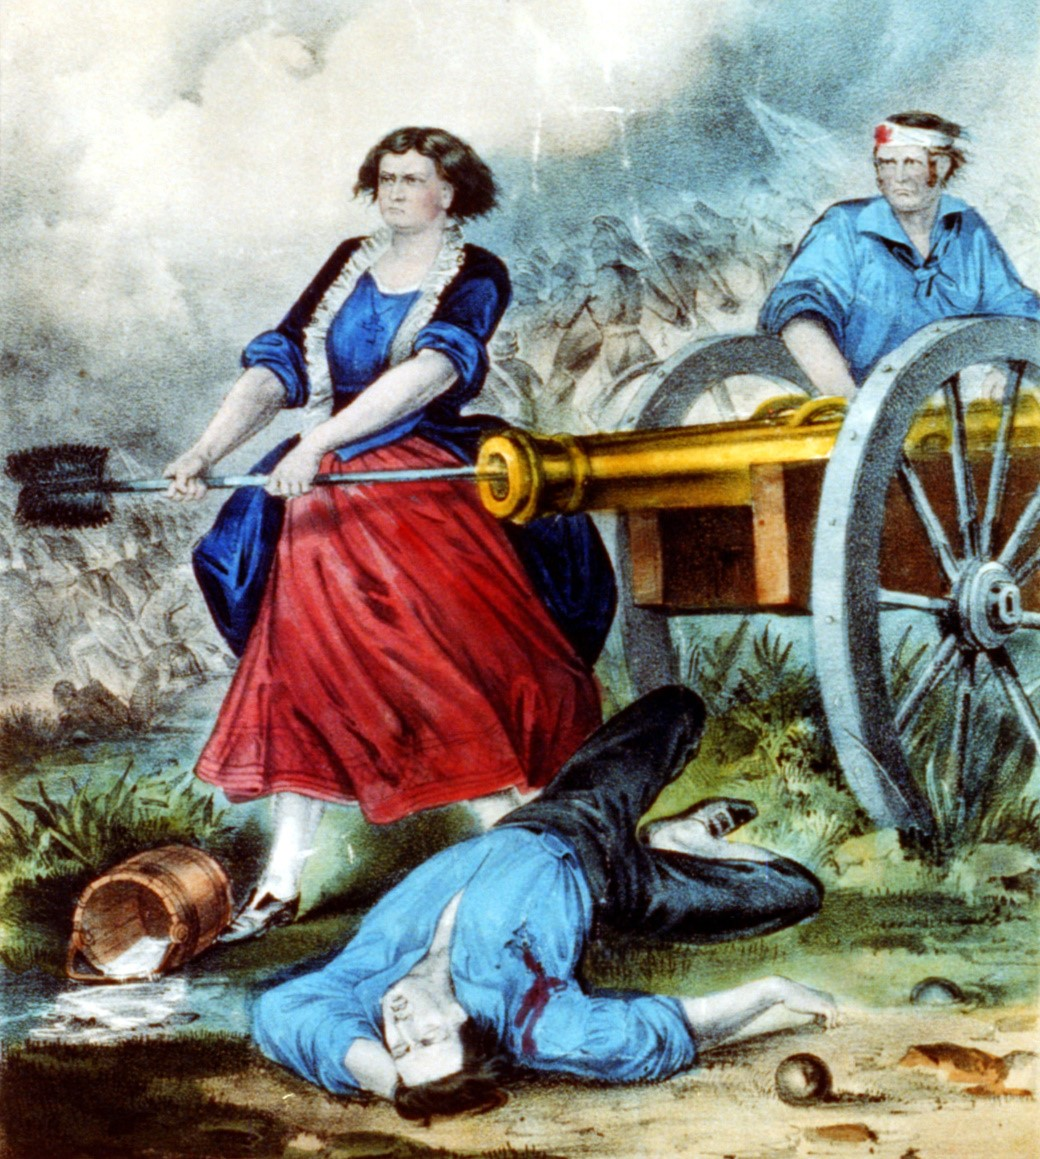 A popularized depiction of Molly Pitcher, published by Currier & Ives between 1865 and 1907.